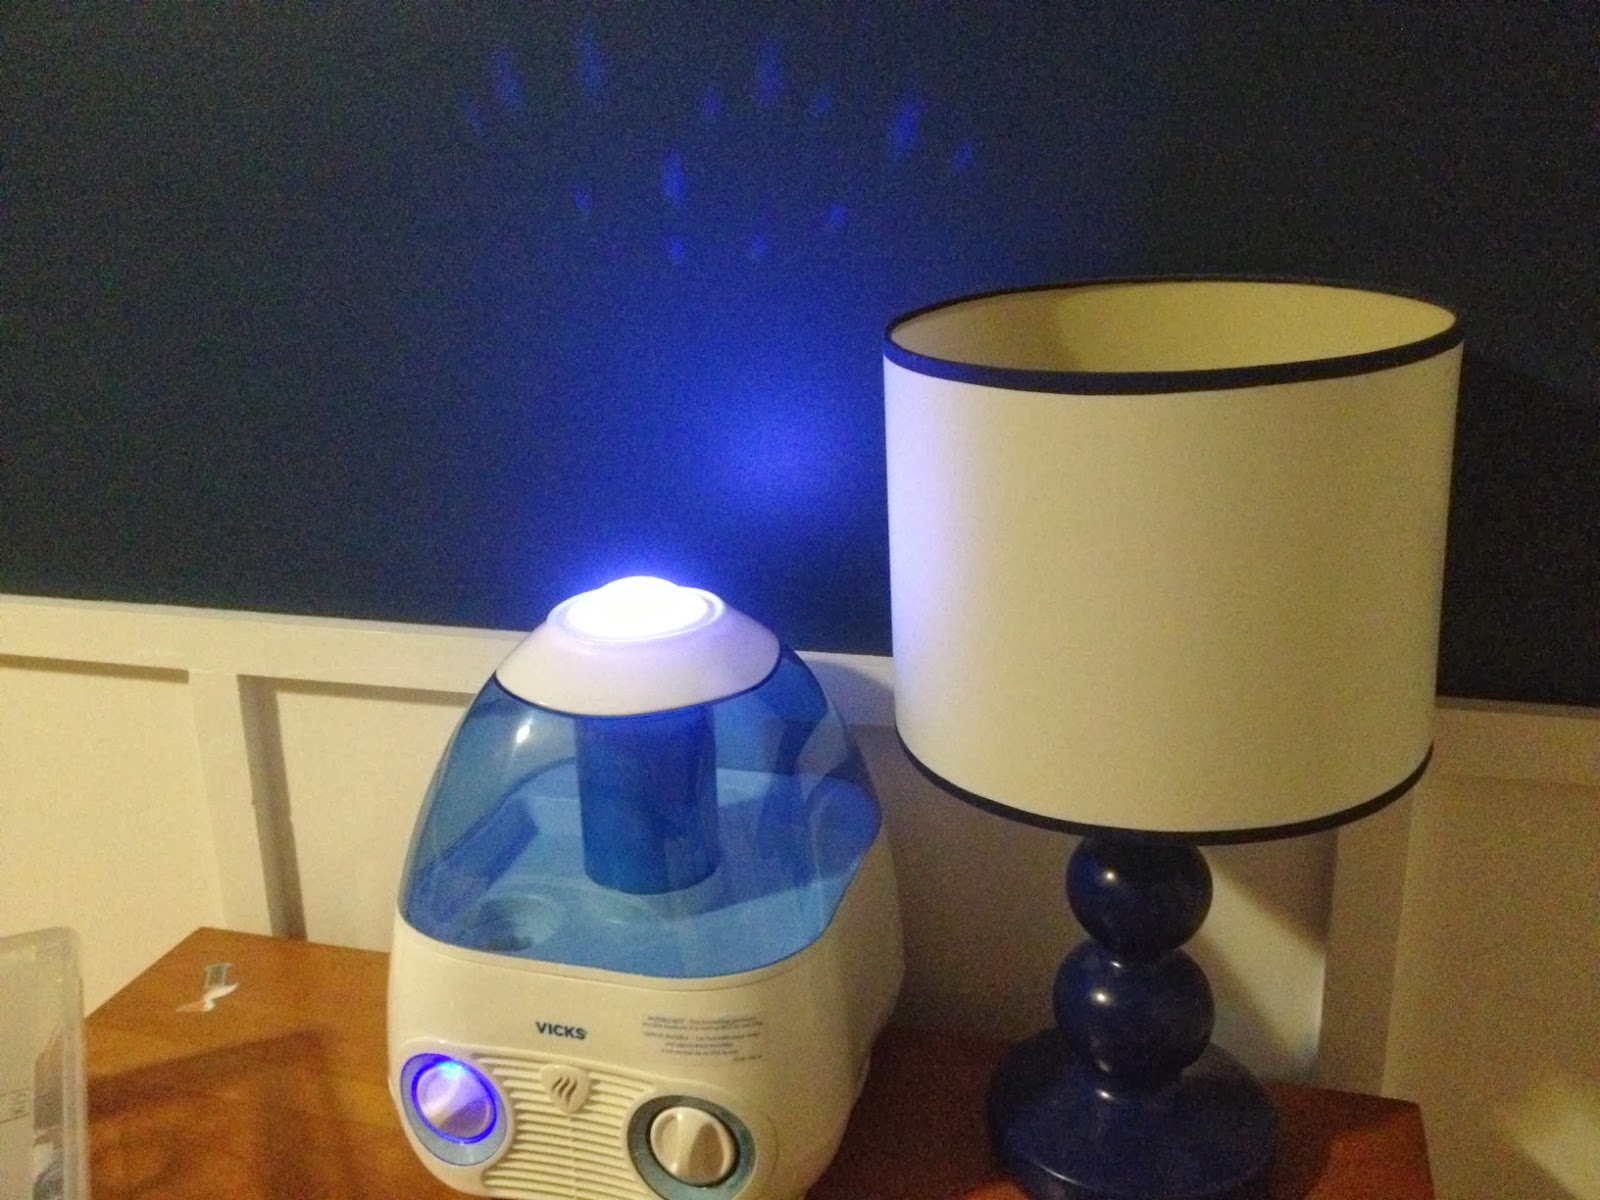 like that you can turn the projector on separately from the humidifier  #2434A7